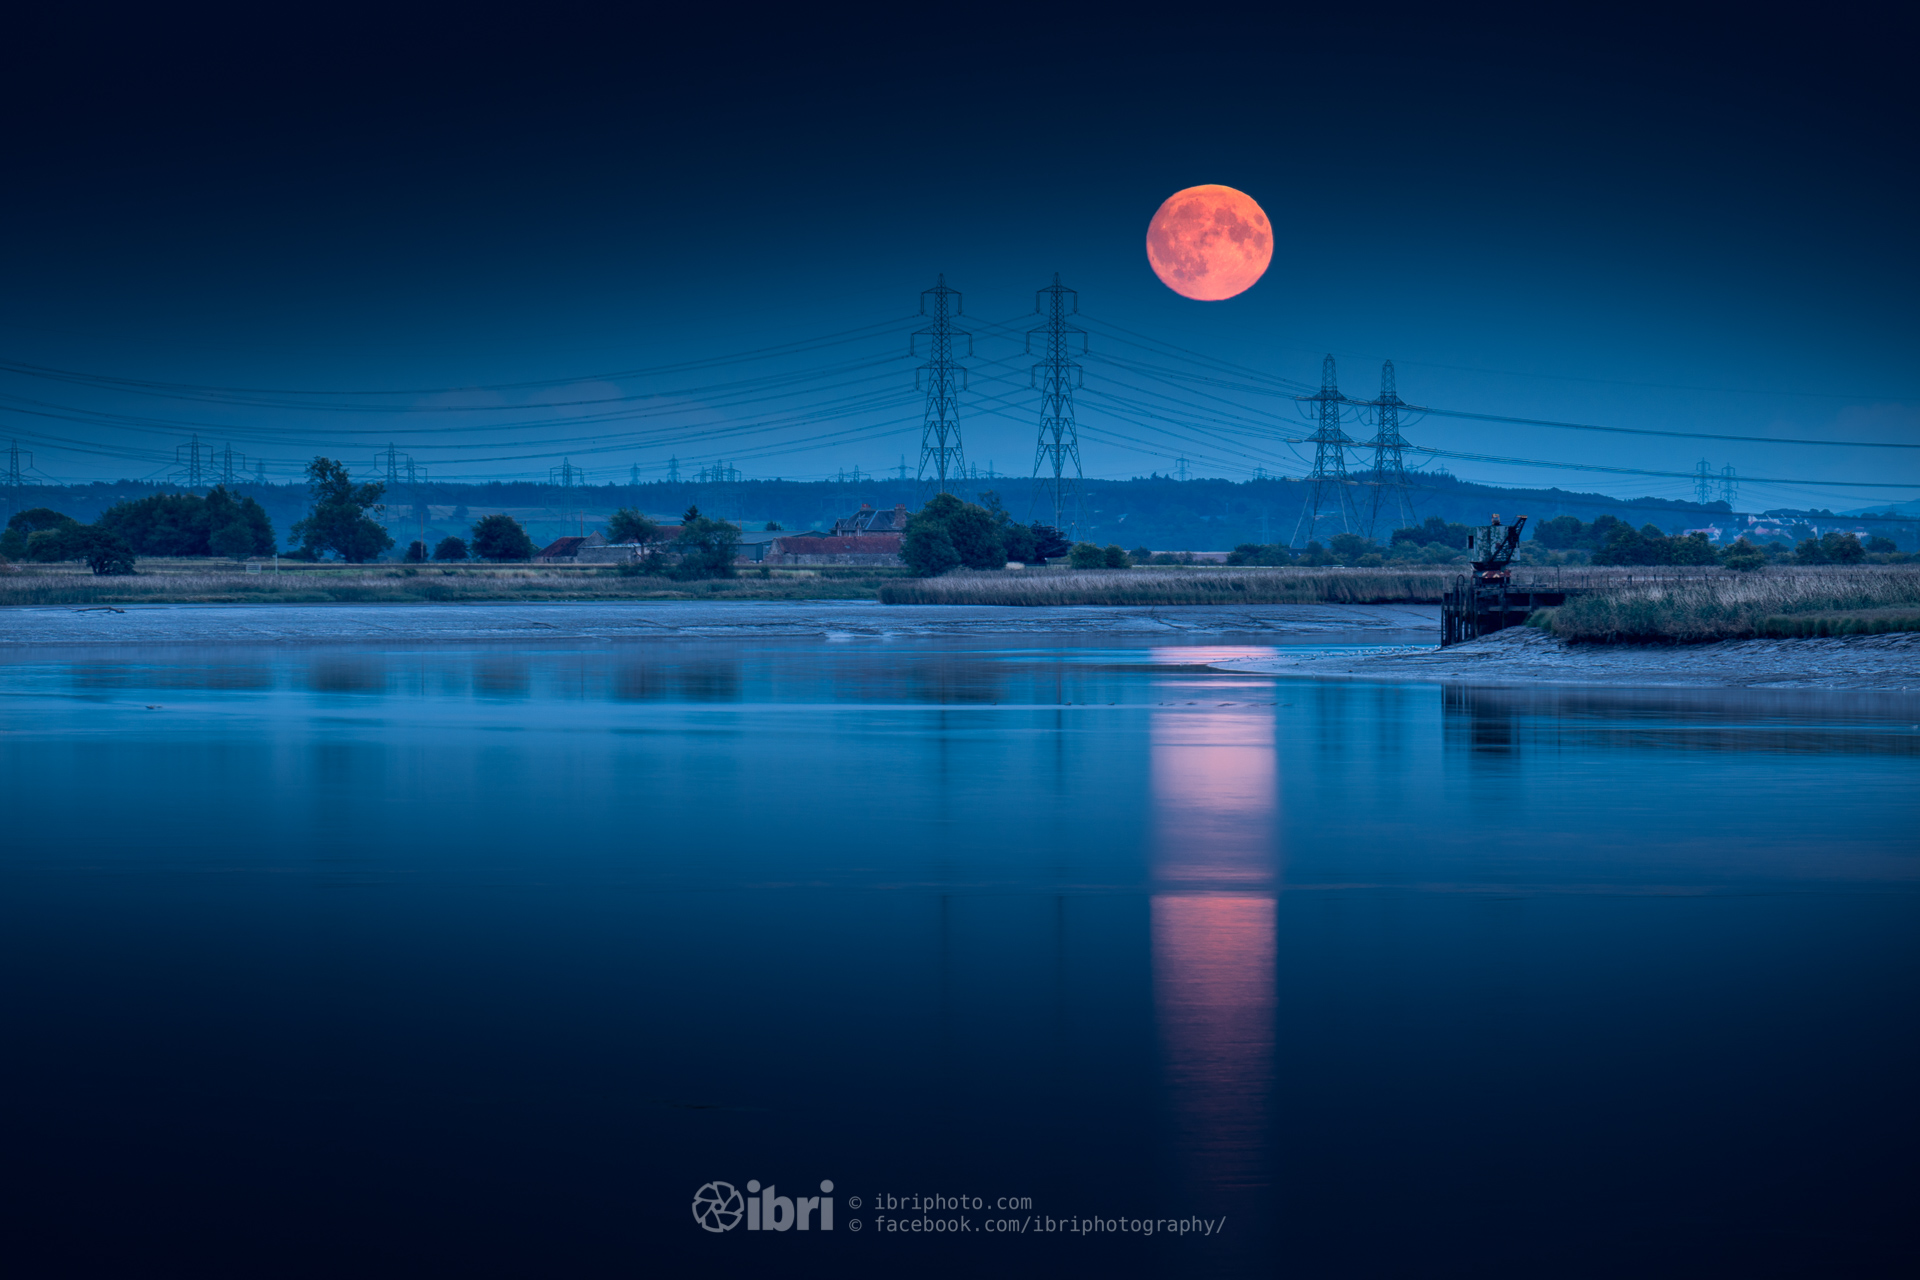 Last Night's Sturgeon Moon Rise over the River Forth